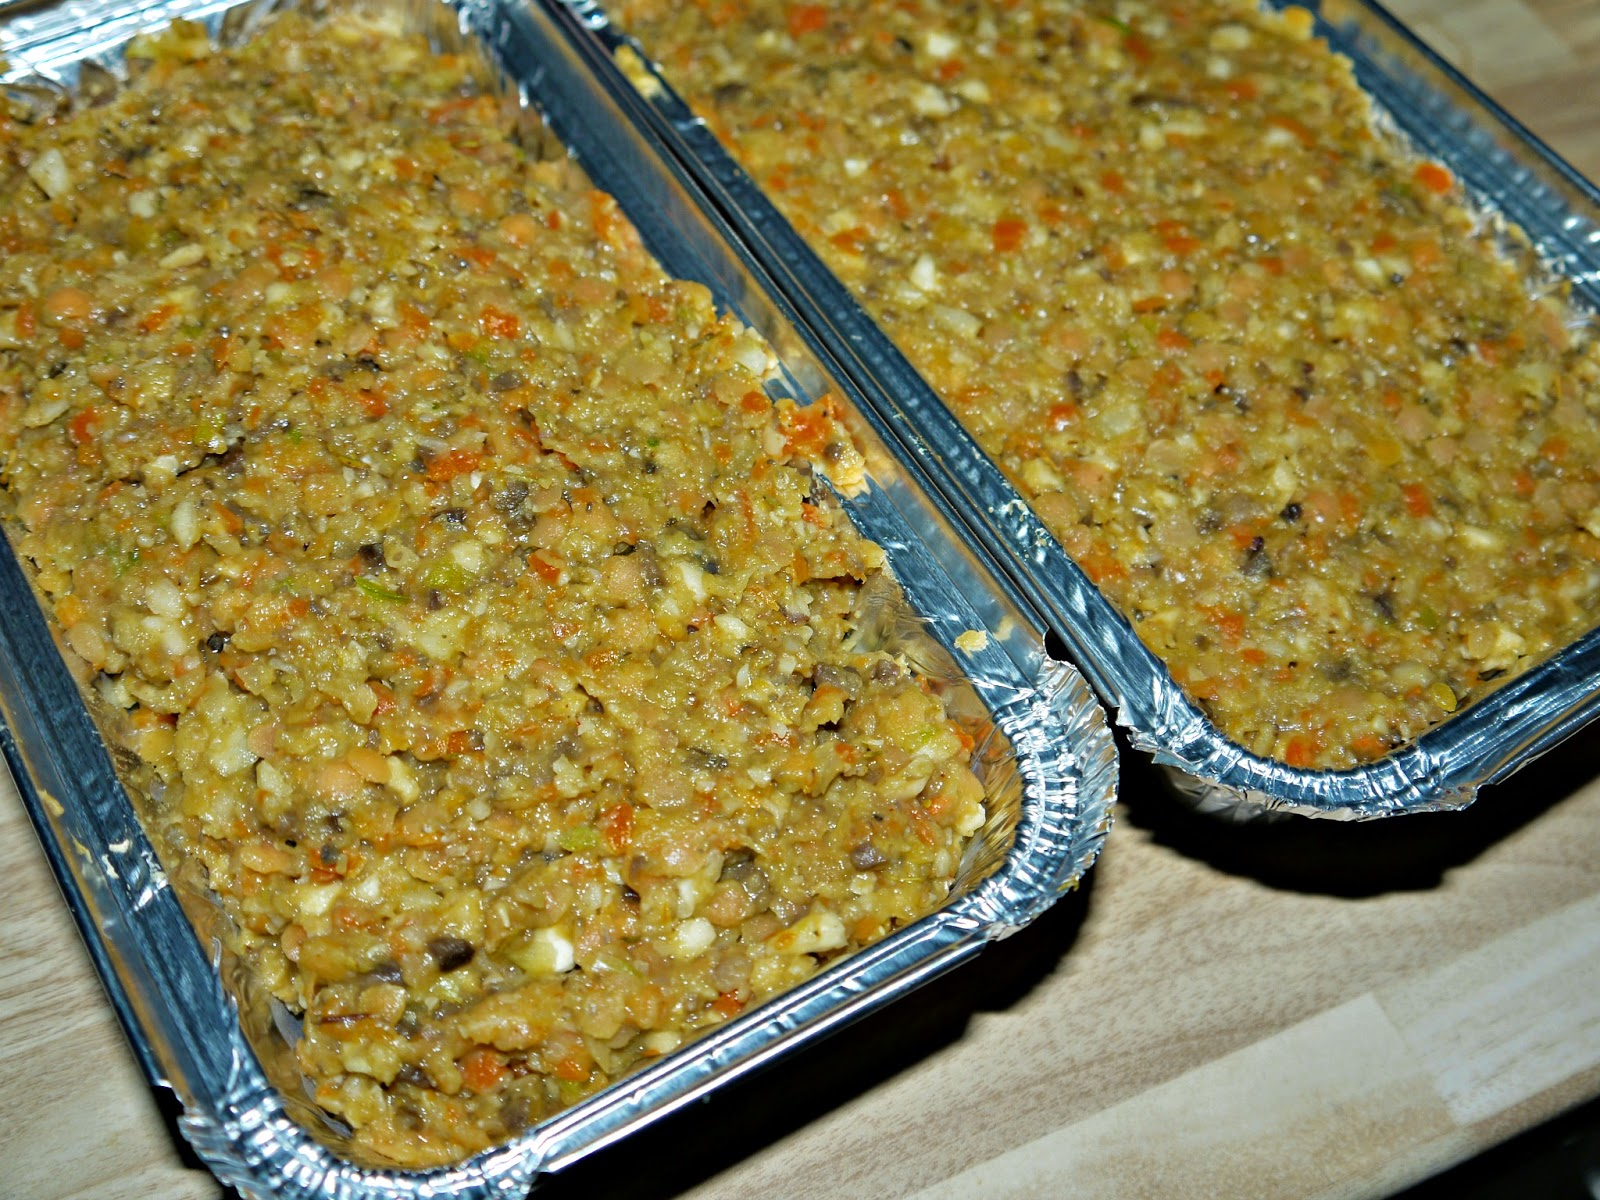 vegan, vegetarian, nut roast